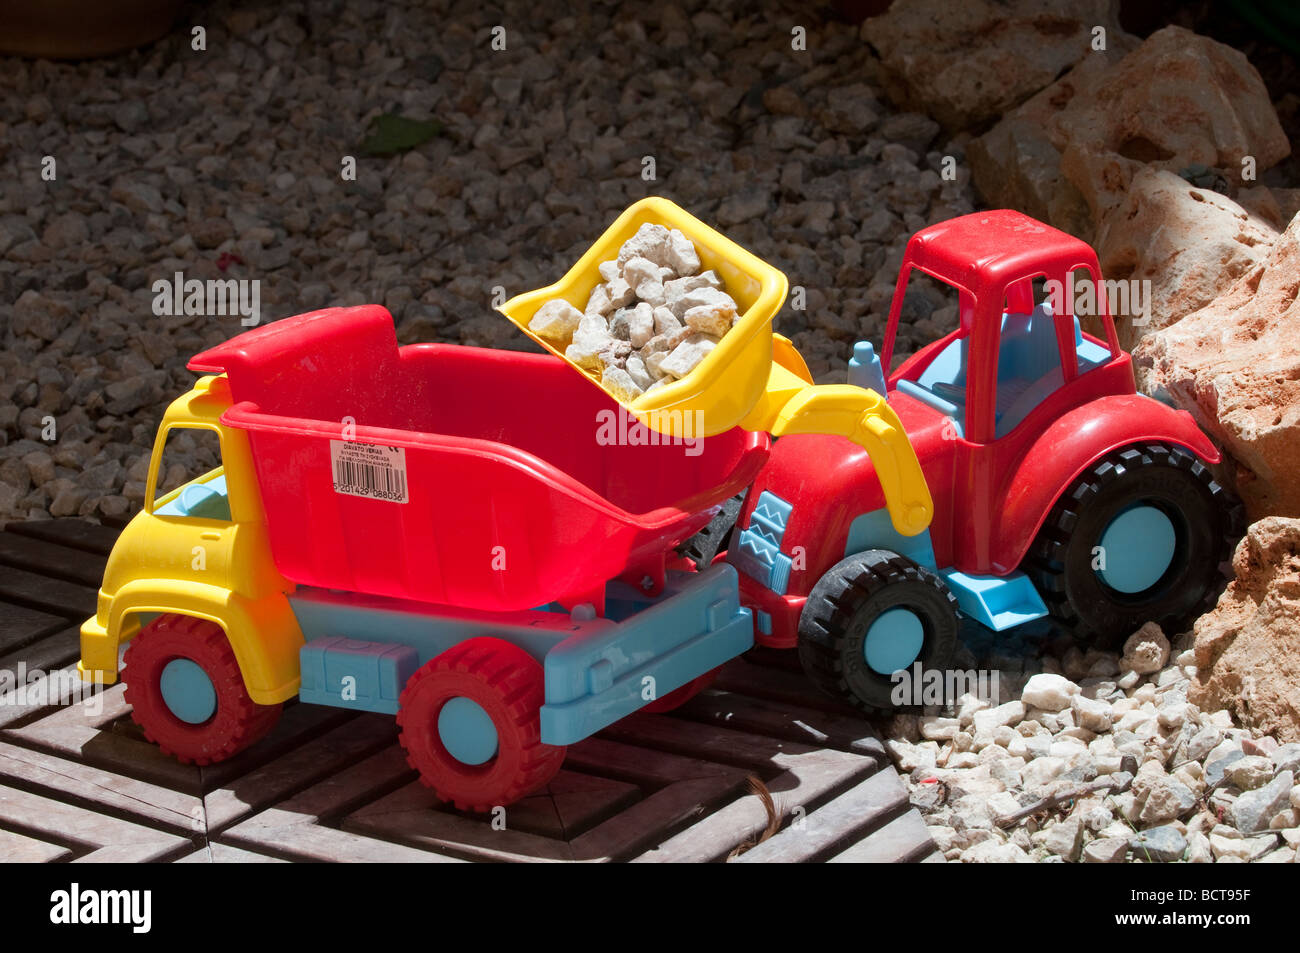 Toy digger and truck in pretend quarry. - Stock Image